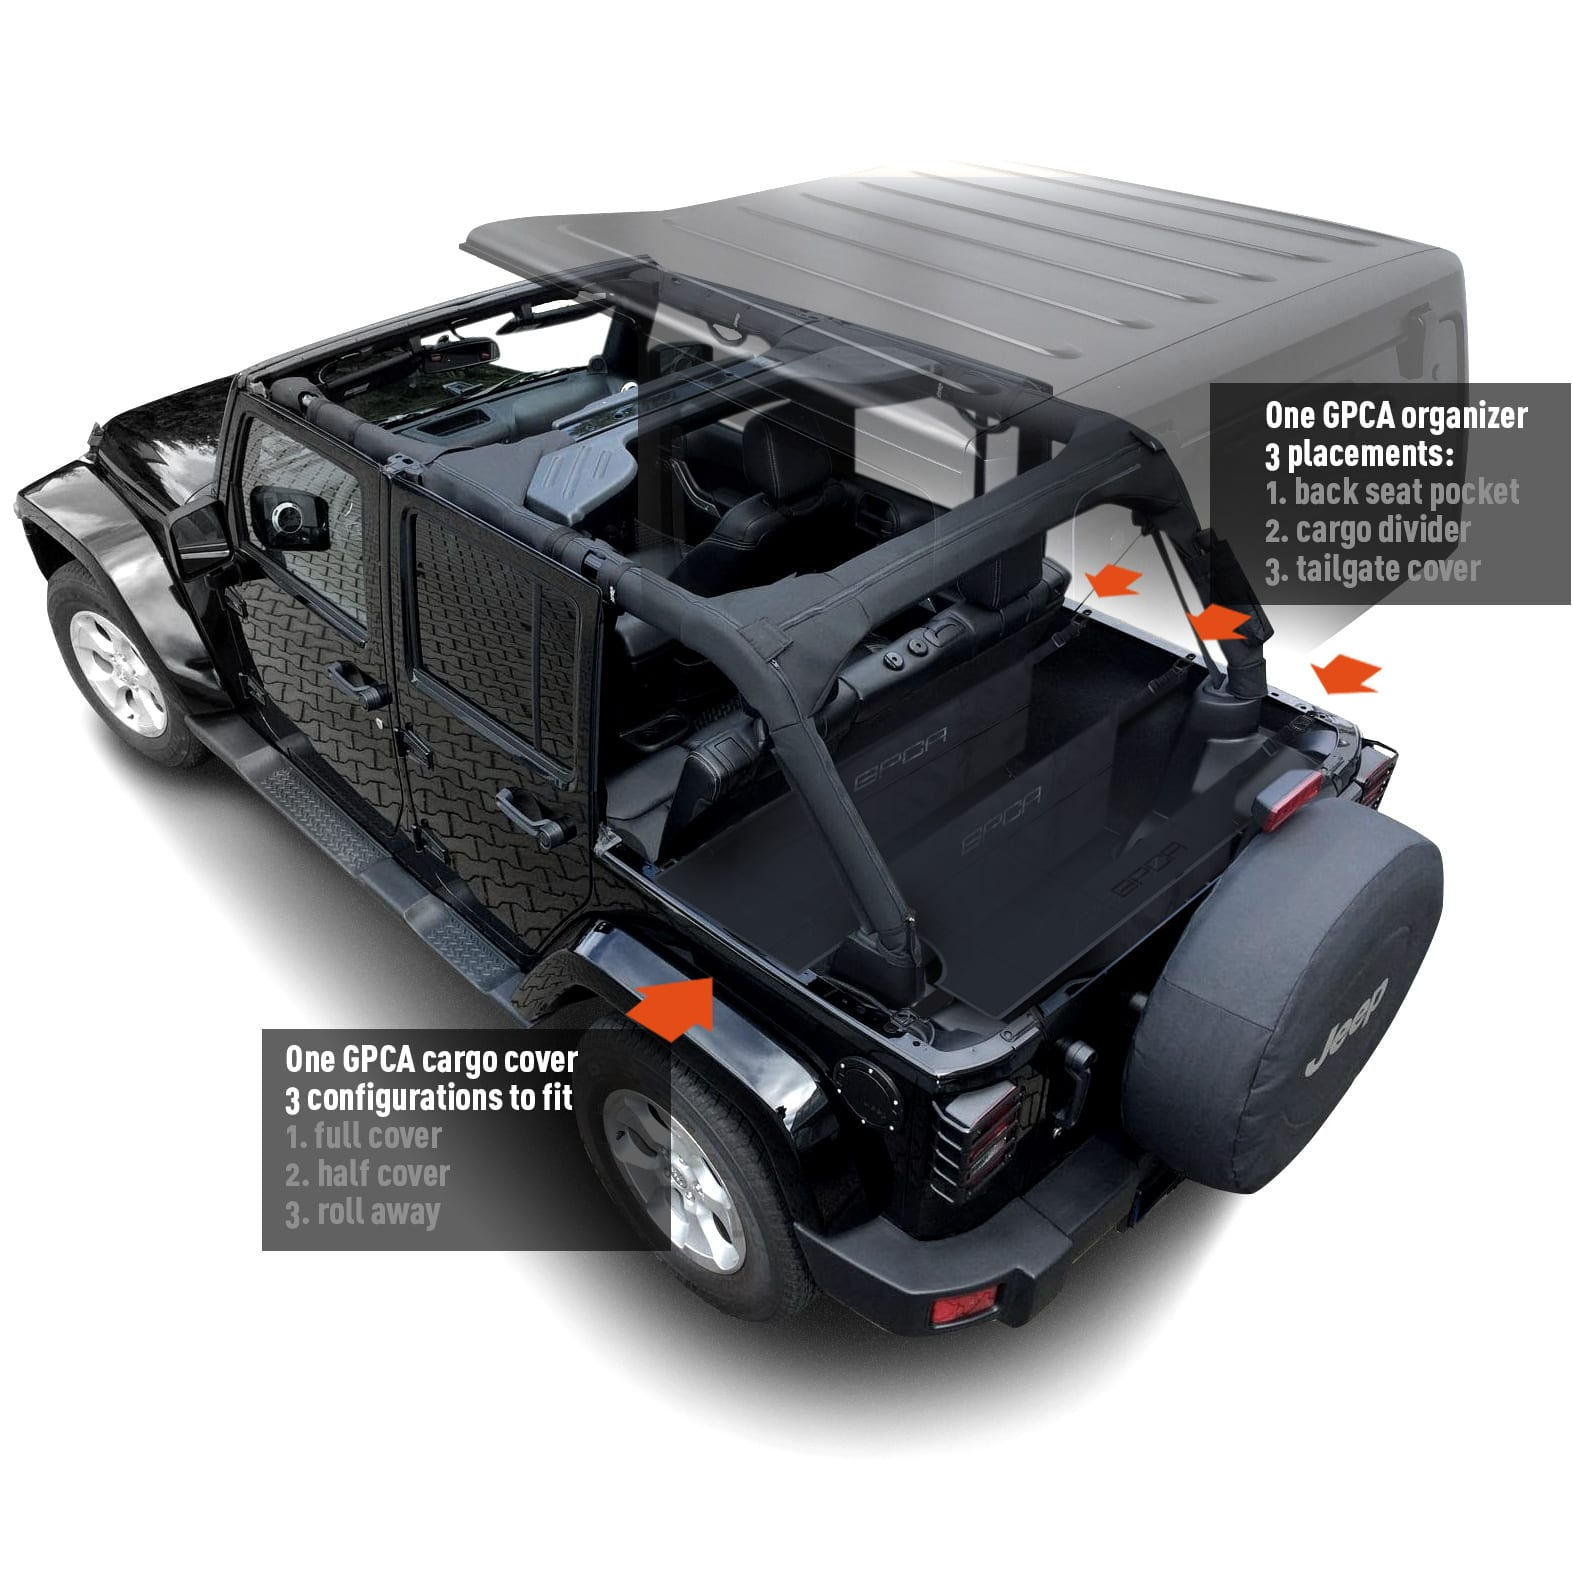 Jeep Wrangler Soft Top Cover >> GPCA Jeep Wrangler Cargo Area Freedom Pack -4DR Cargo Cover with 3 configs